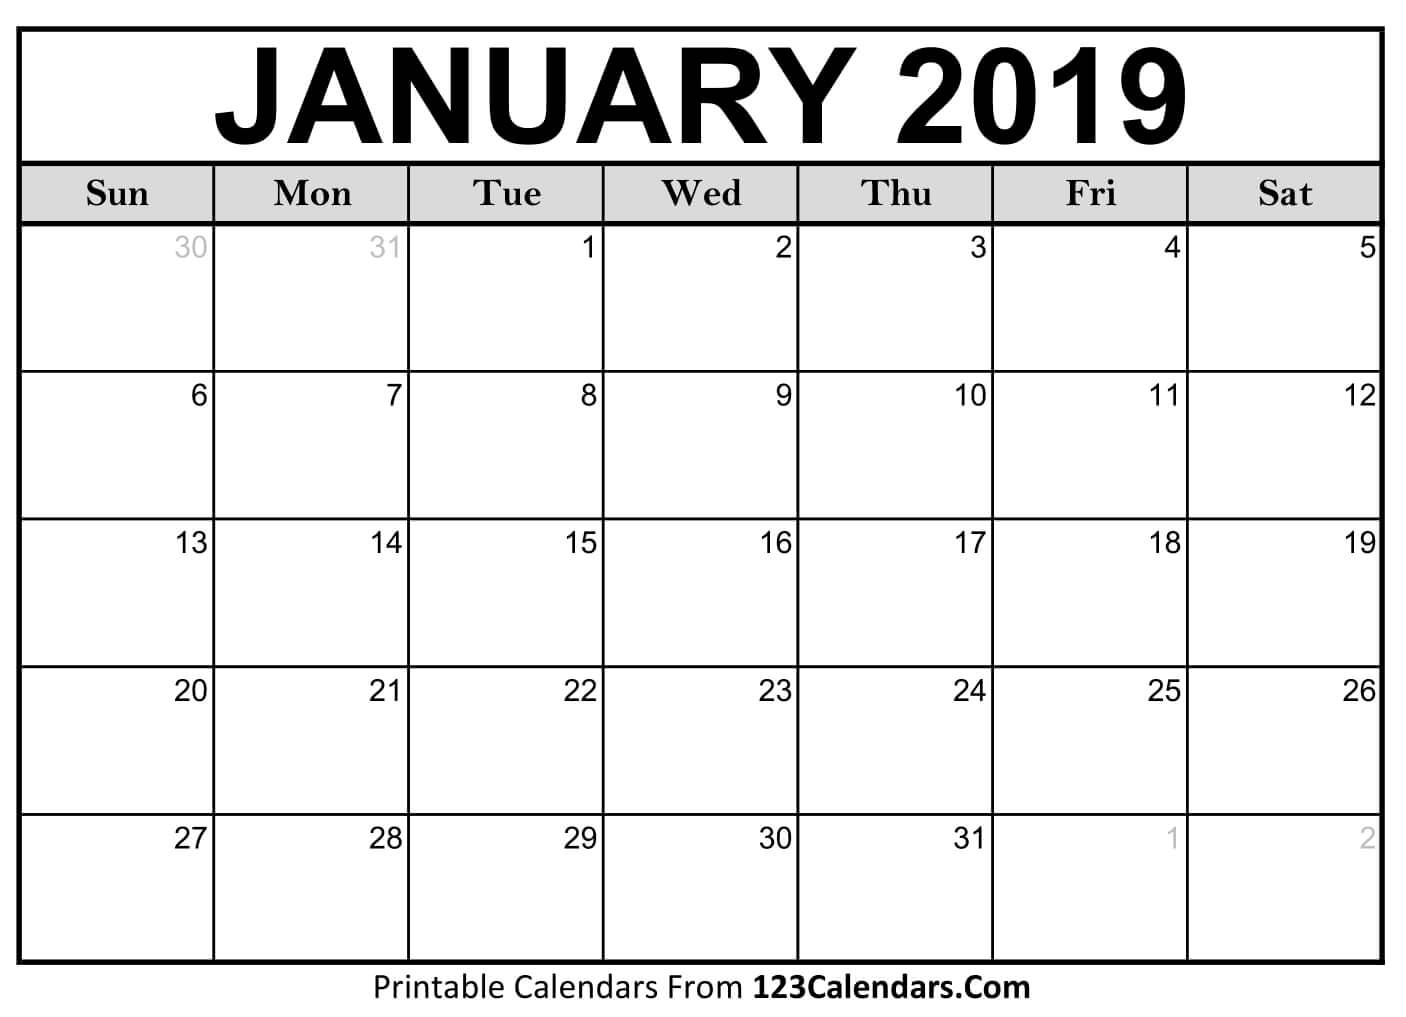 Free Coloring Calendar 2019 With January Pages